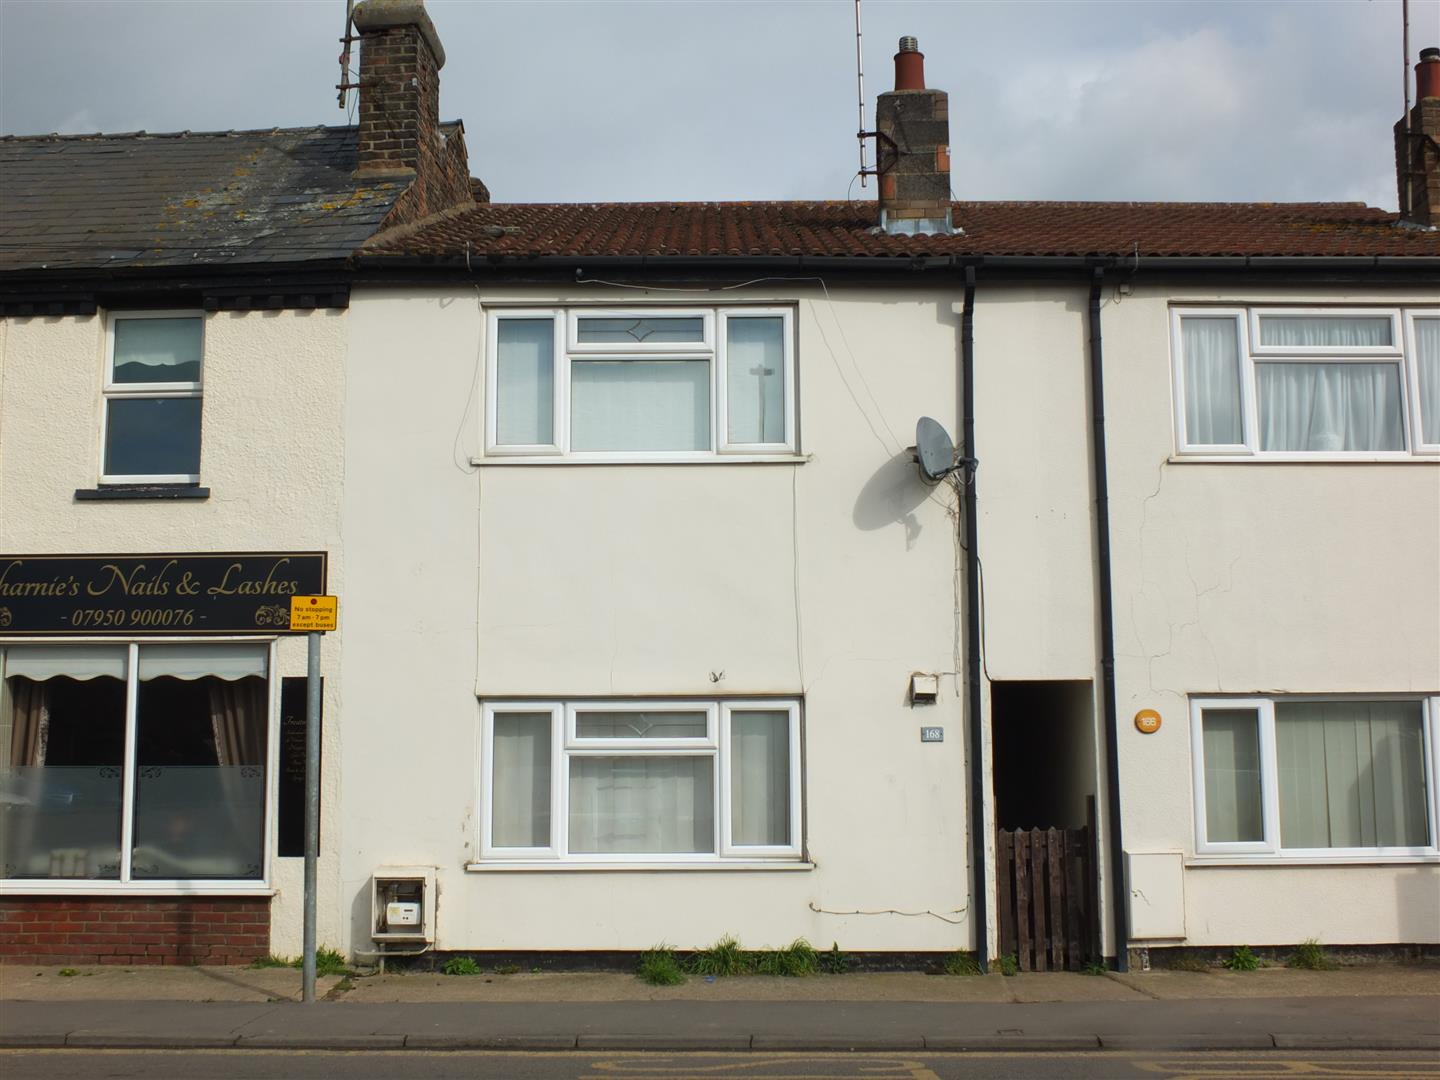 2 bed terraced house for sale in Sutton Bridge Spalding, PE12 9SF, PE12